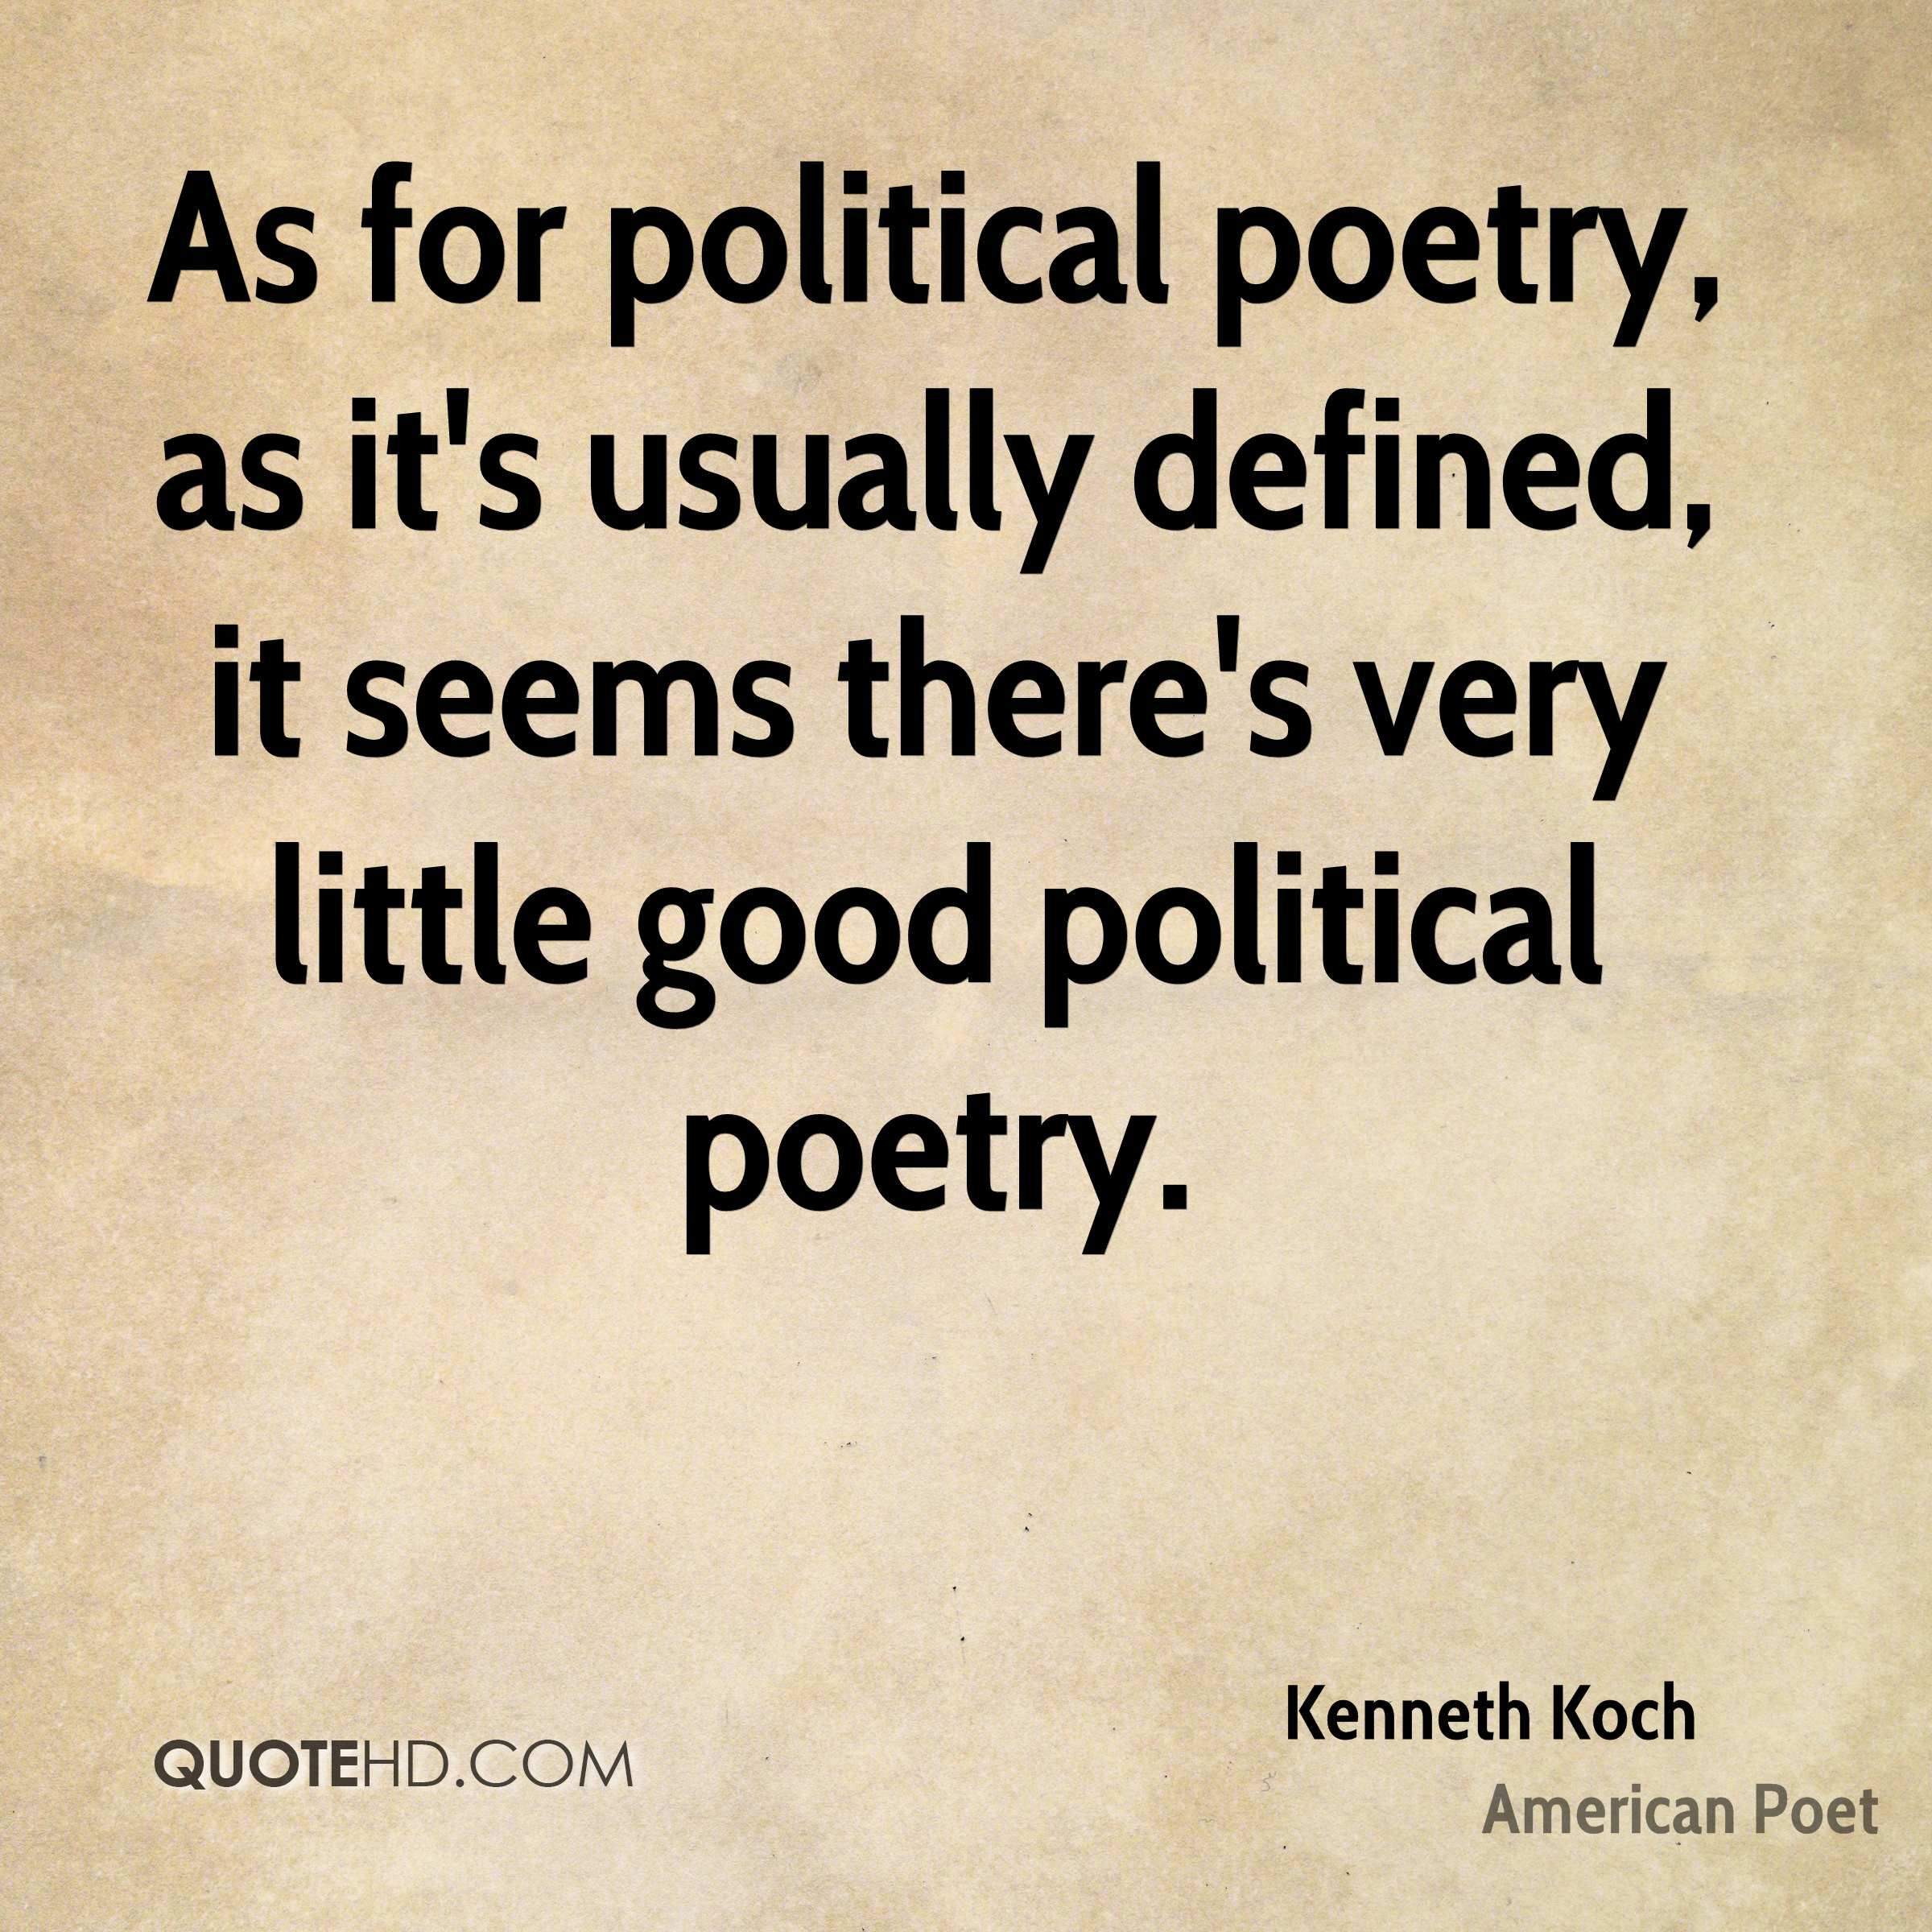 As for political poetry, as it's usually defined, it seems there's very little good political poetry.